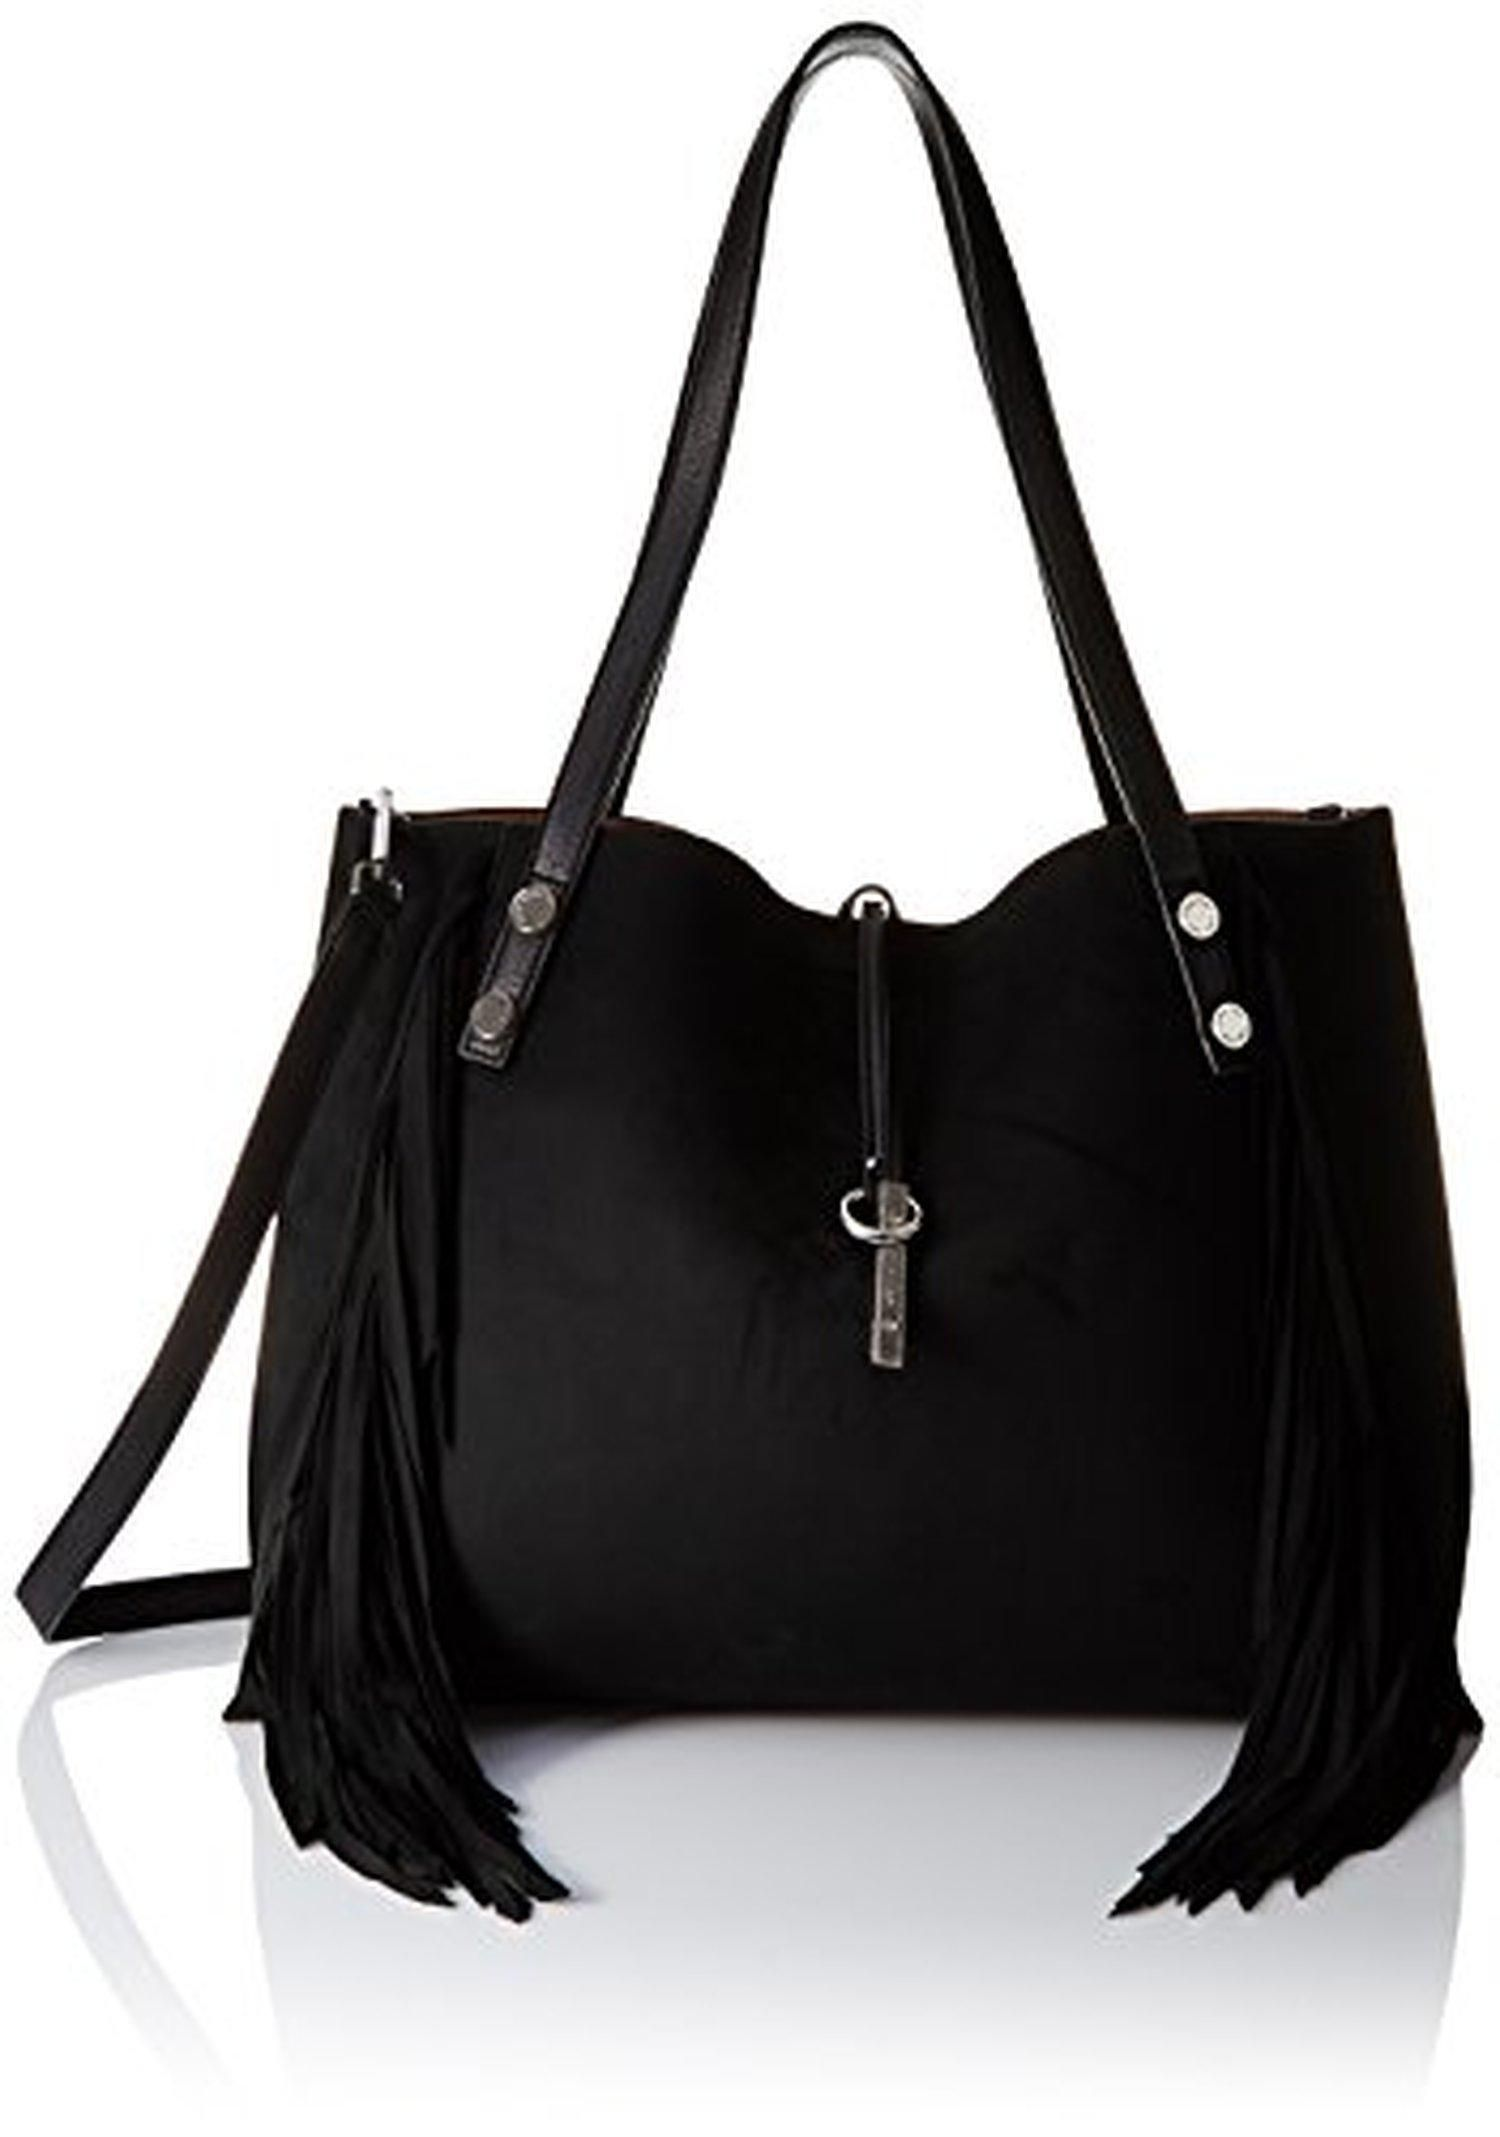 79bf185c5 Calvin Klein Novelty Suede Fringe Reversible Blk/Lug Tote Bag, Black/Luggage,  One Size - Brought to you by Avarsha.com